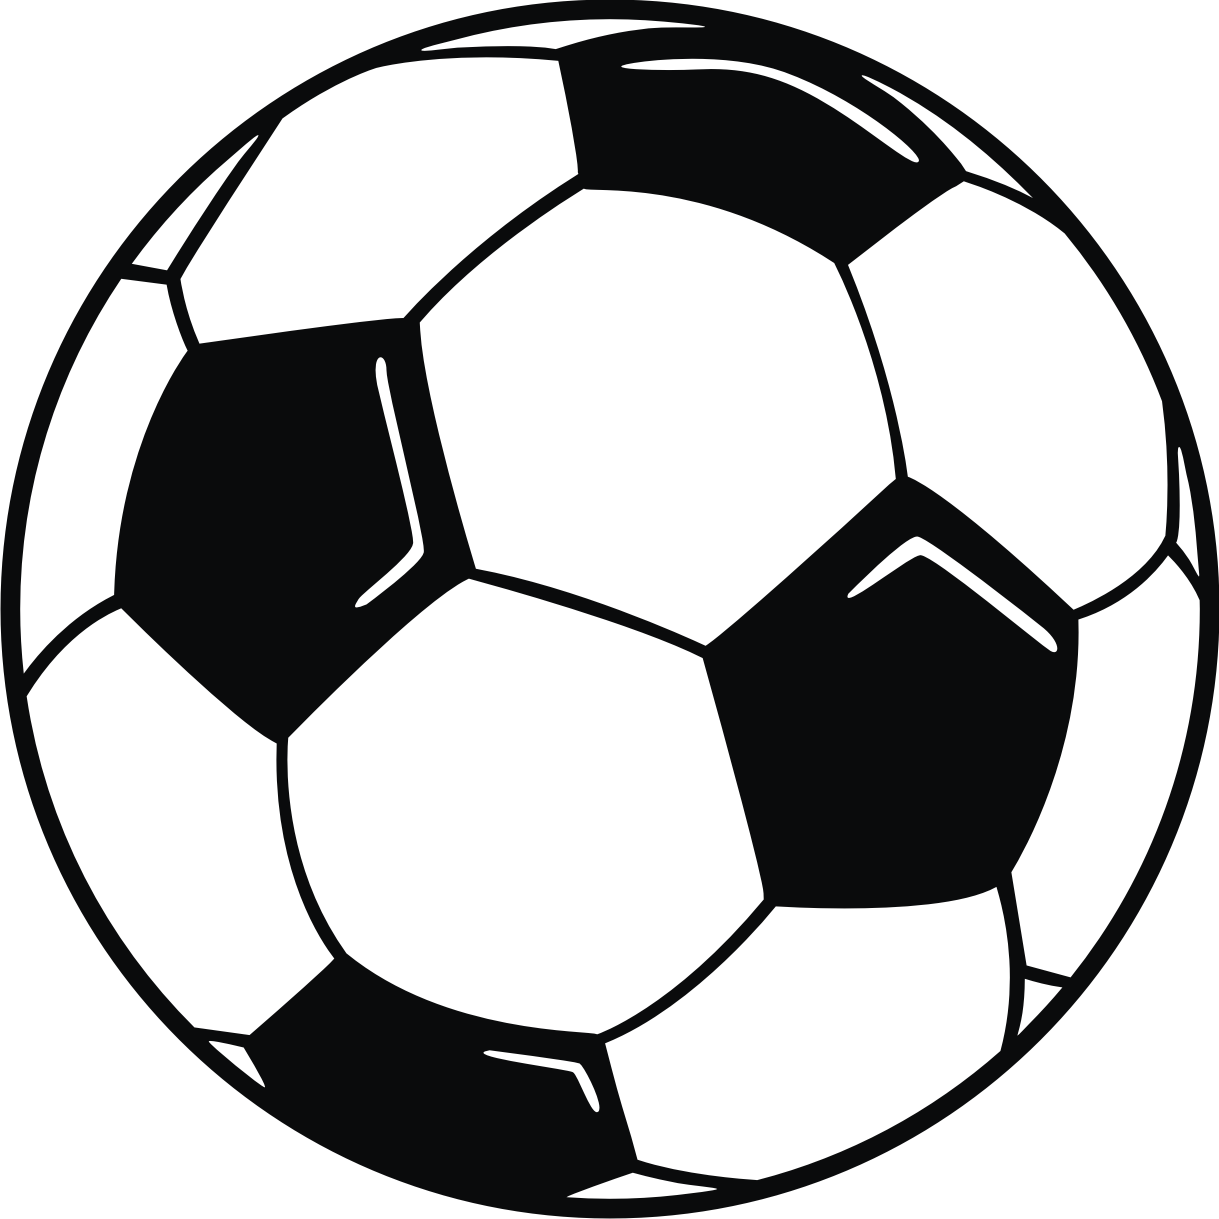 soccer ball printable images free cliparts that you can download to ...